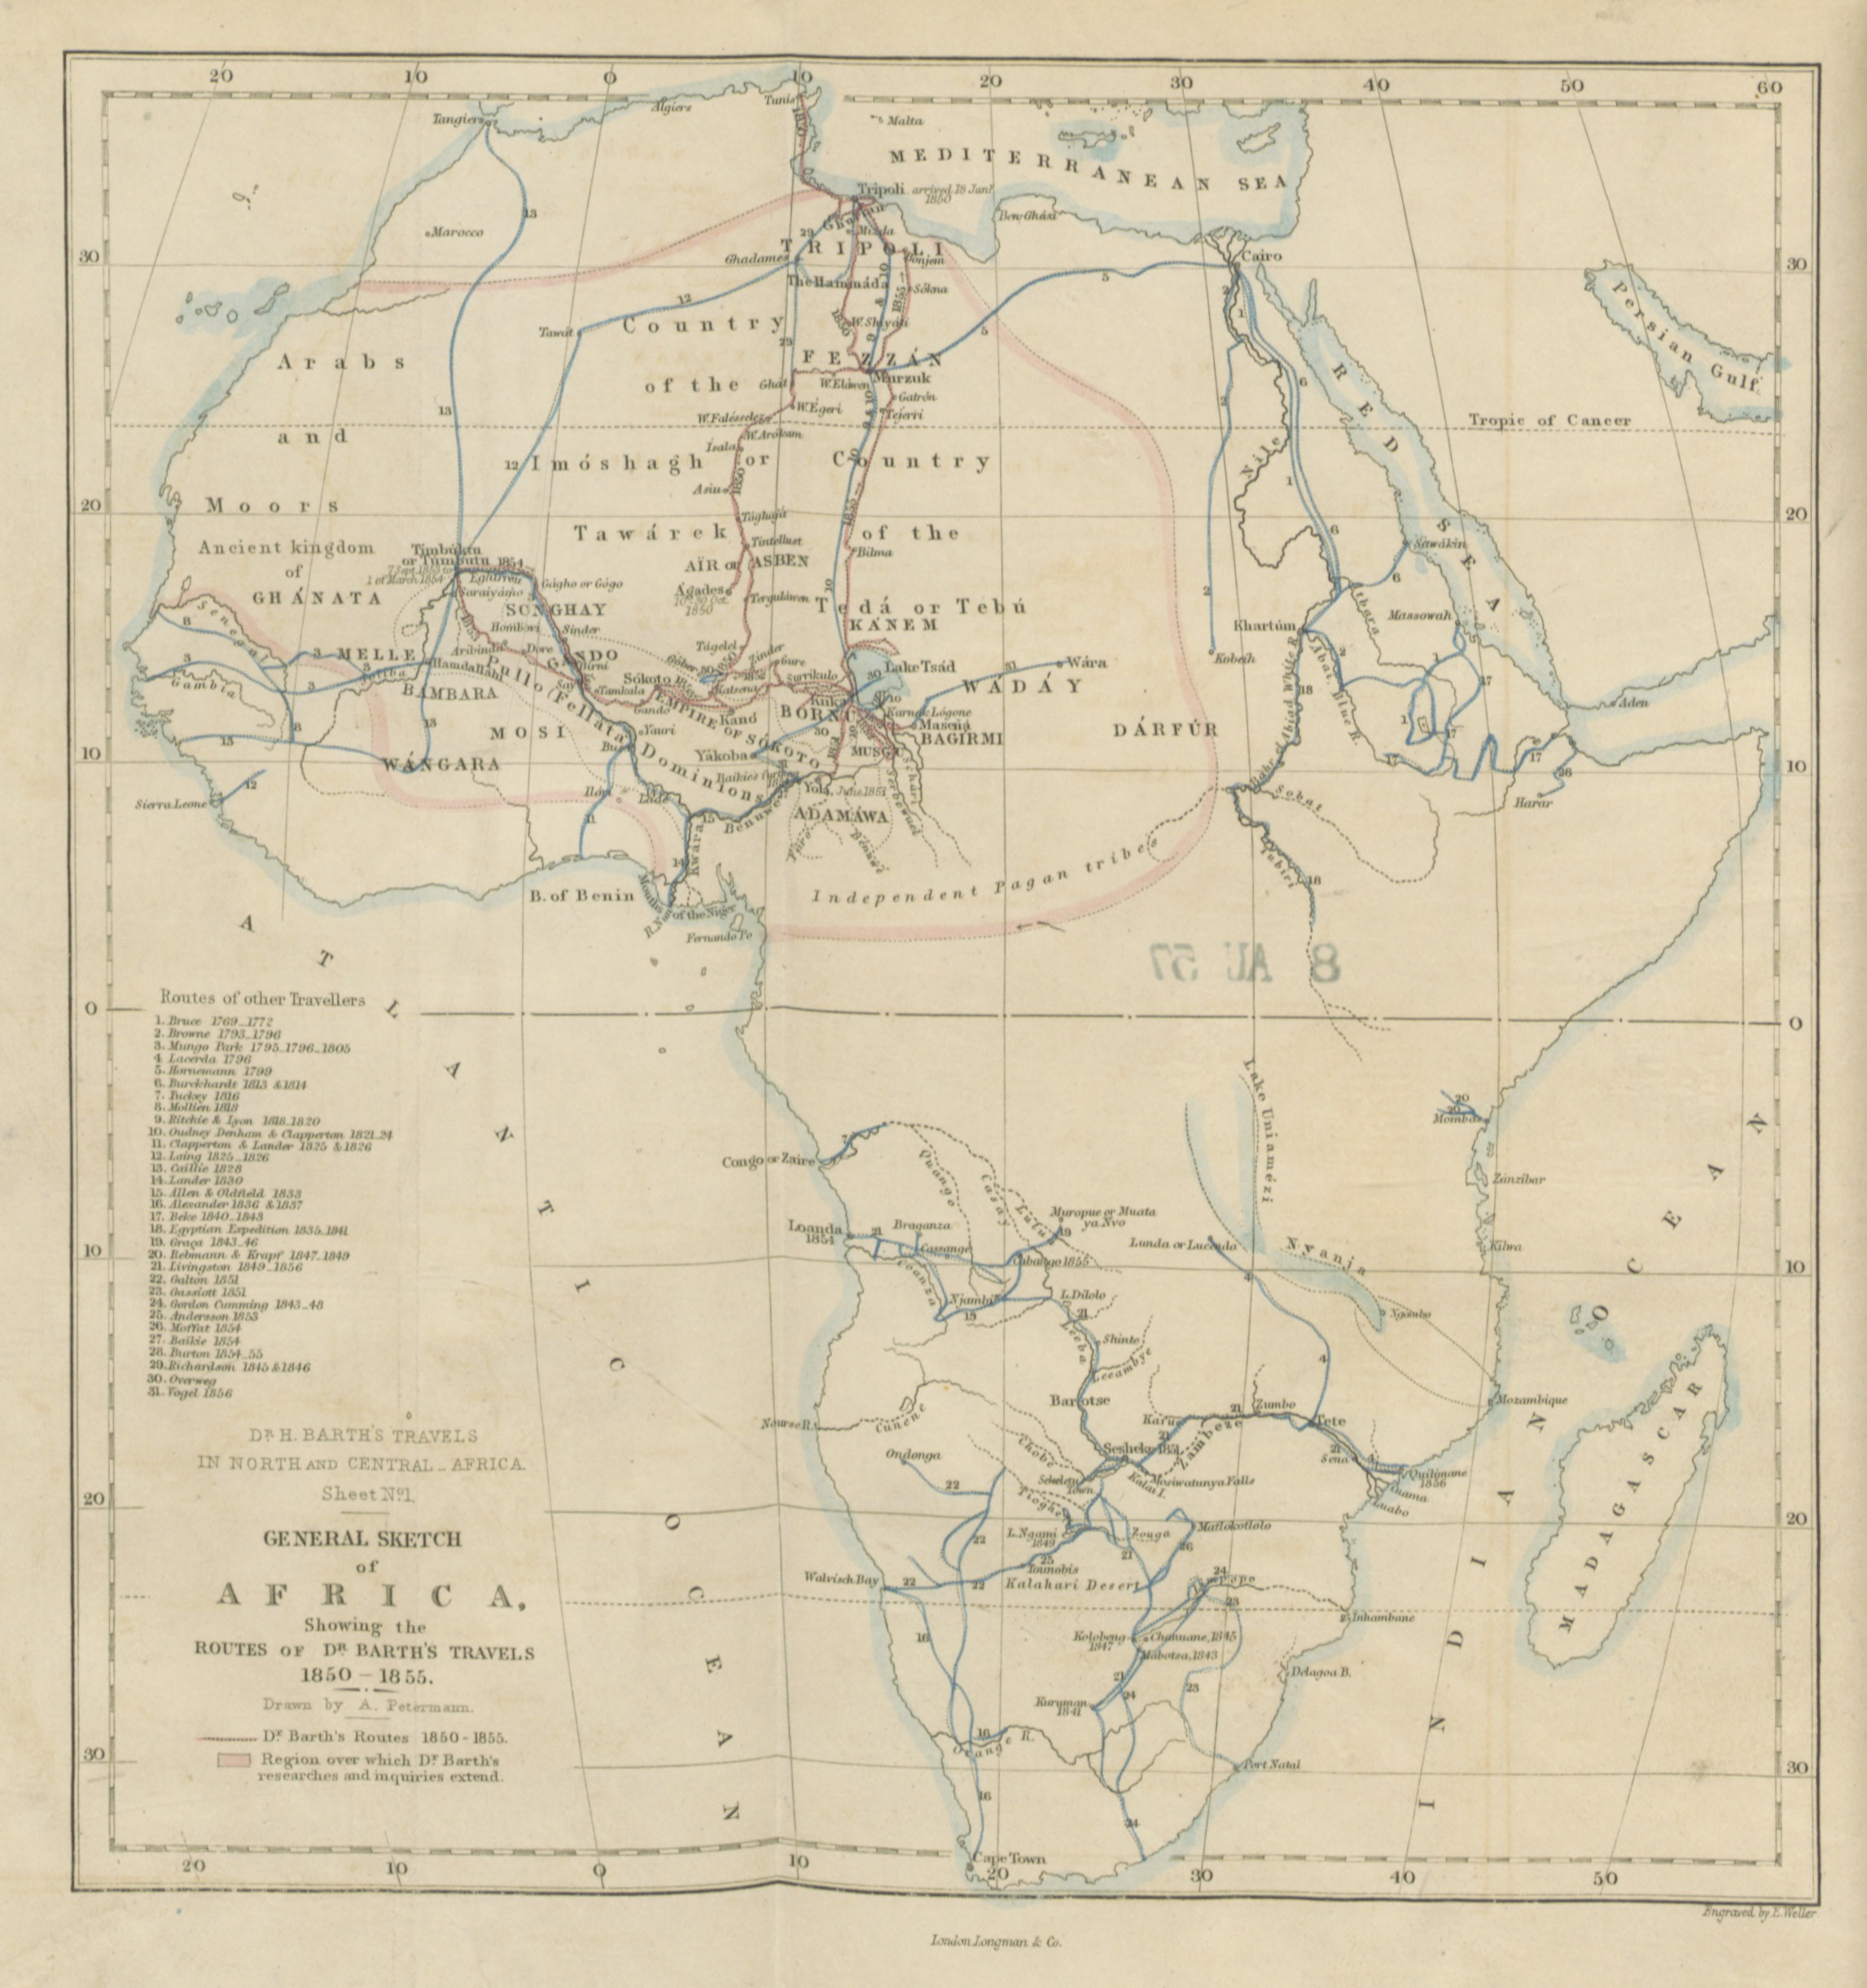 Map Of Africa 1850.File Heinrich Barth S Route Through Africa 1850 To 1855 With